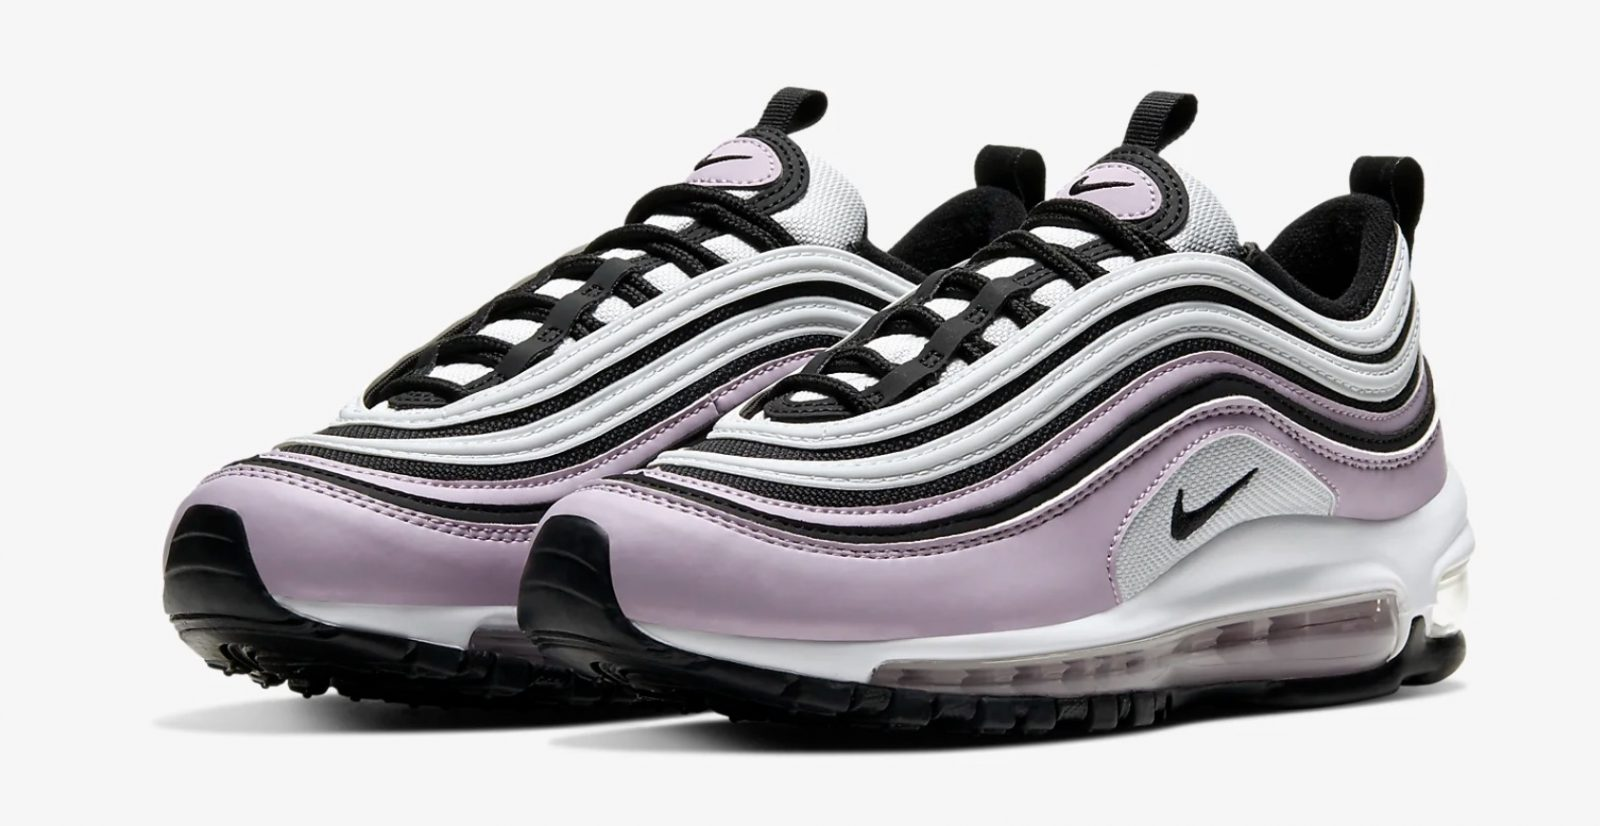 Rock Around The Christmas Tree In These Iced Violet Air Max 97's For UNDER £100